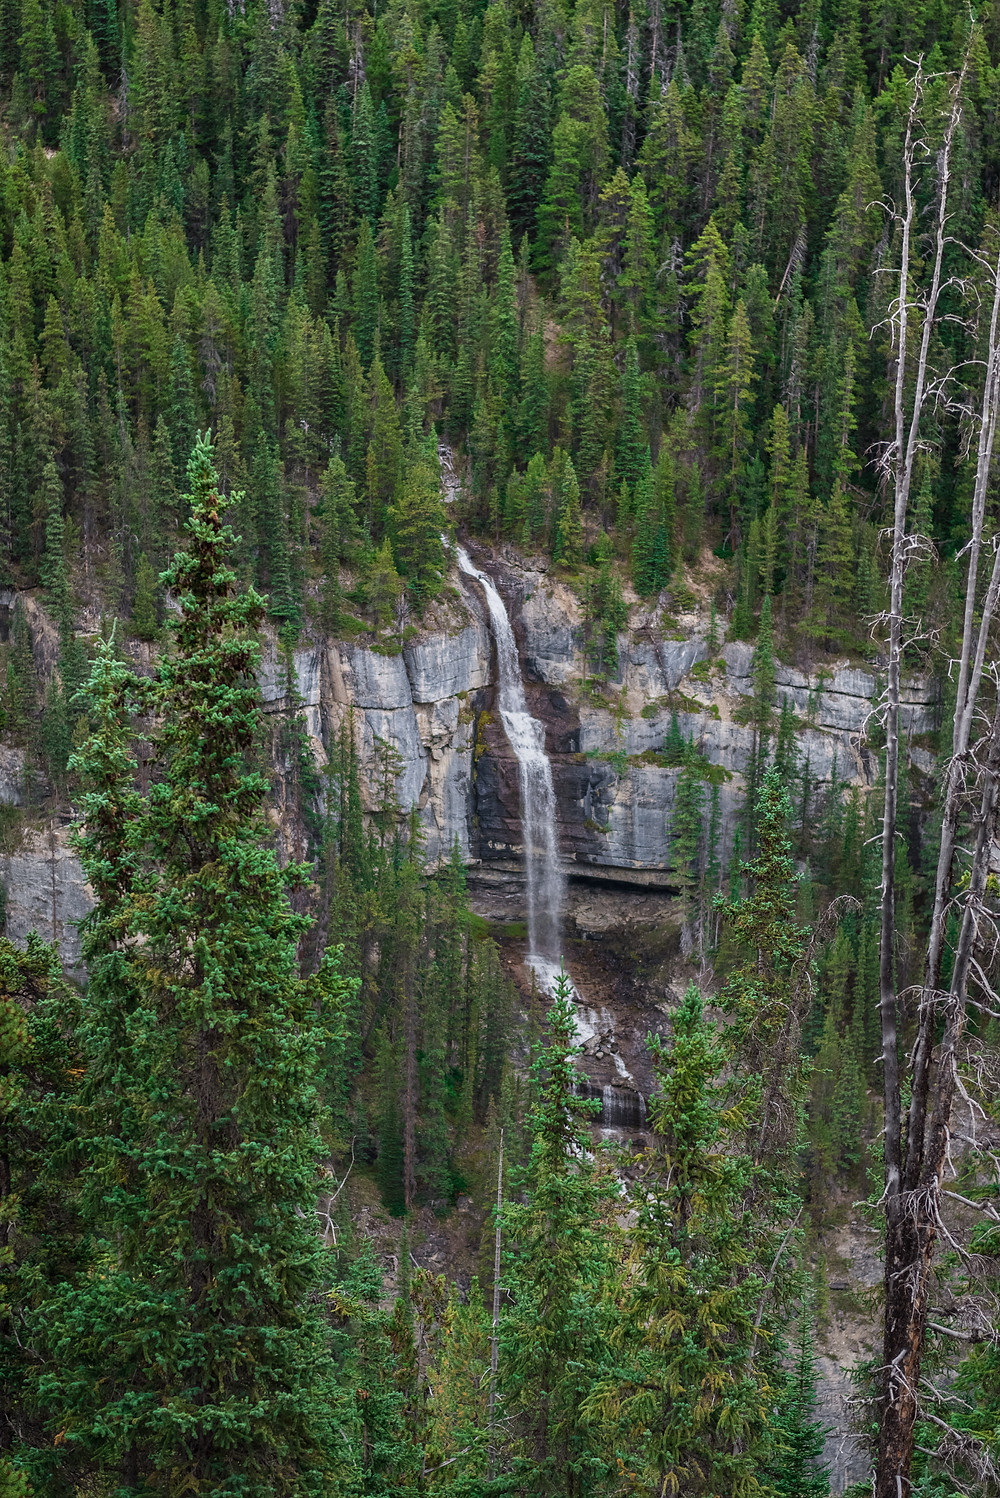 A waterfall along the Icefields Parkway in Alberta Canada